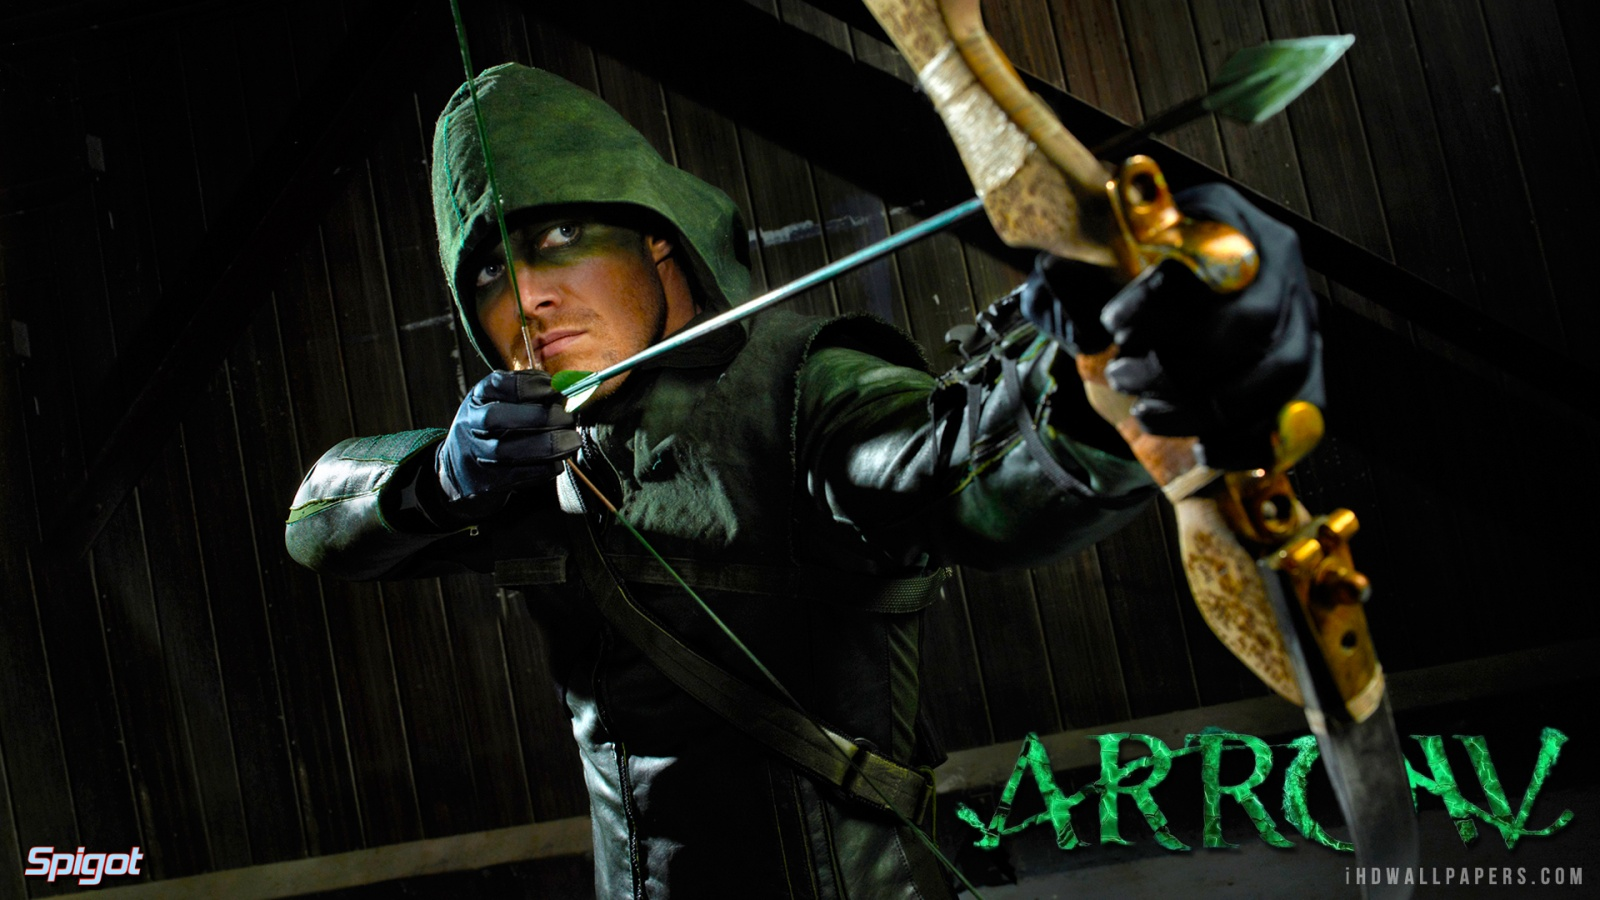 CW Arrow HD Wallpaper   iHD Wallpapers 1600x900